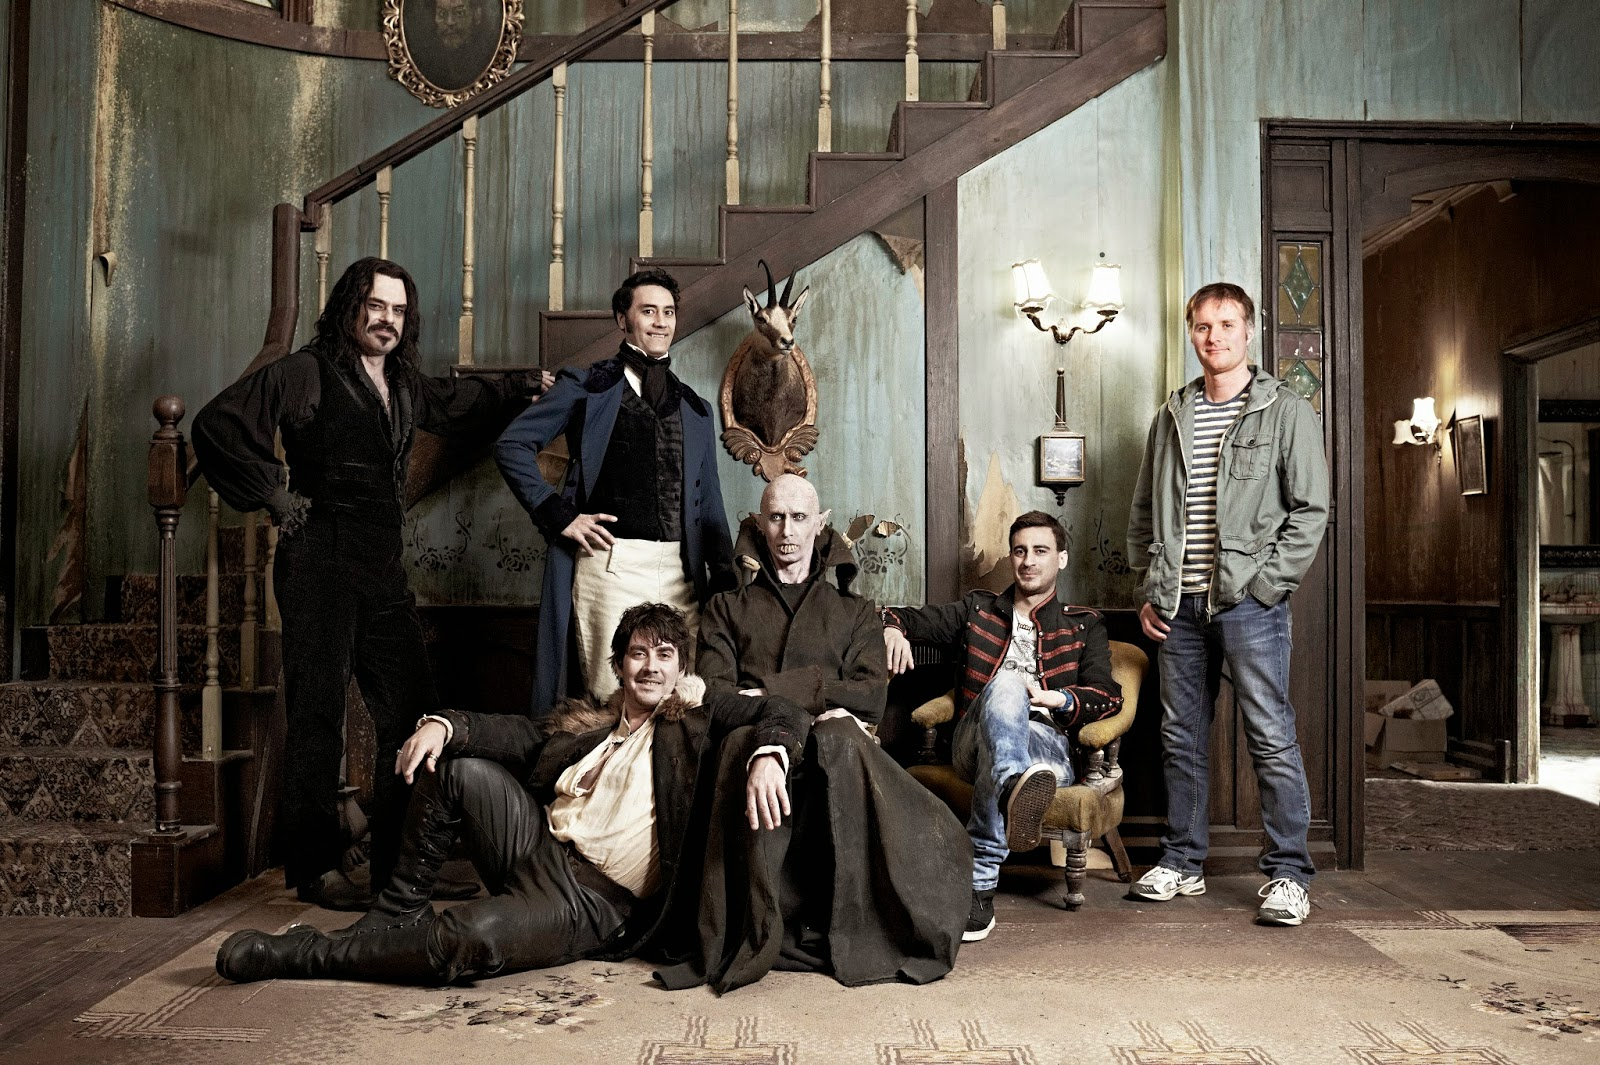 5 Zimmer Küche Sarg Movie4k 5 Zimmer Küche Sarg Ot What We Do In The Shadows Die